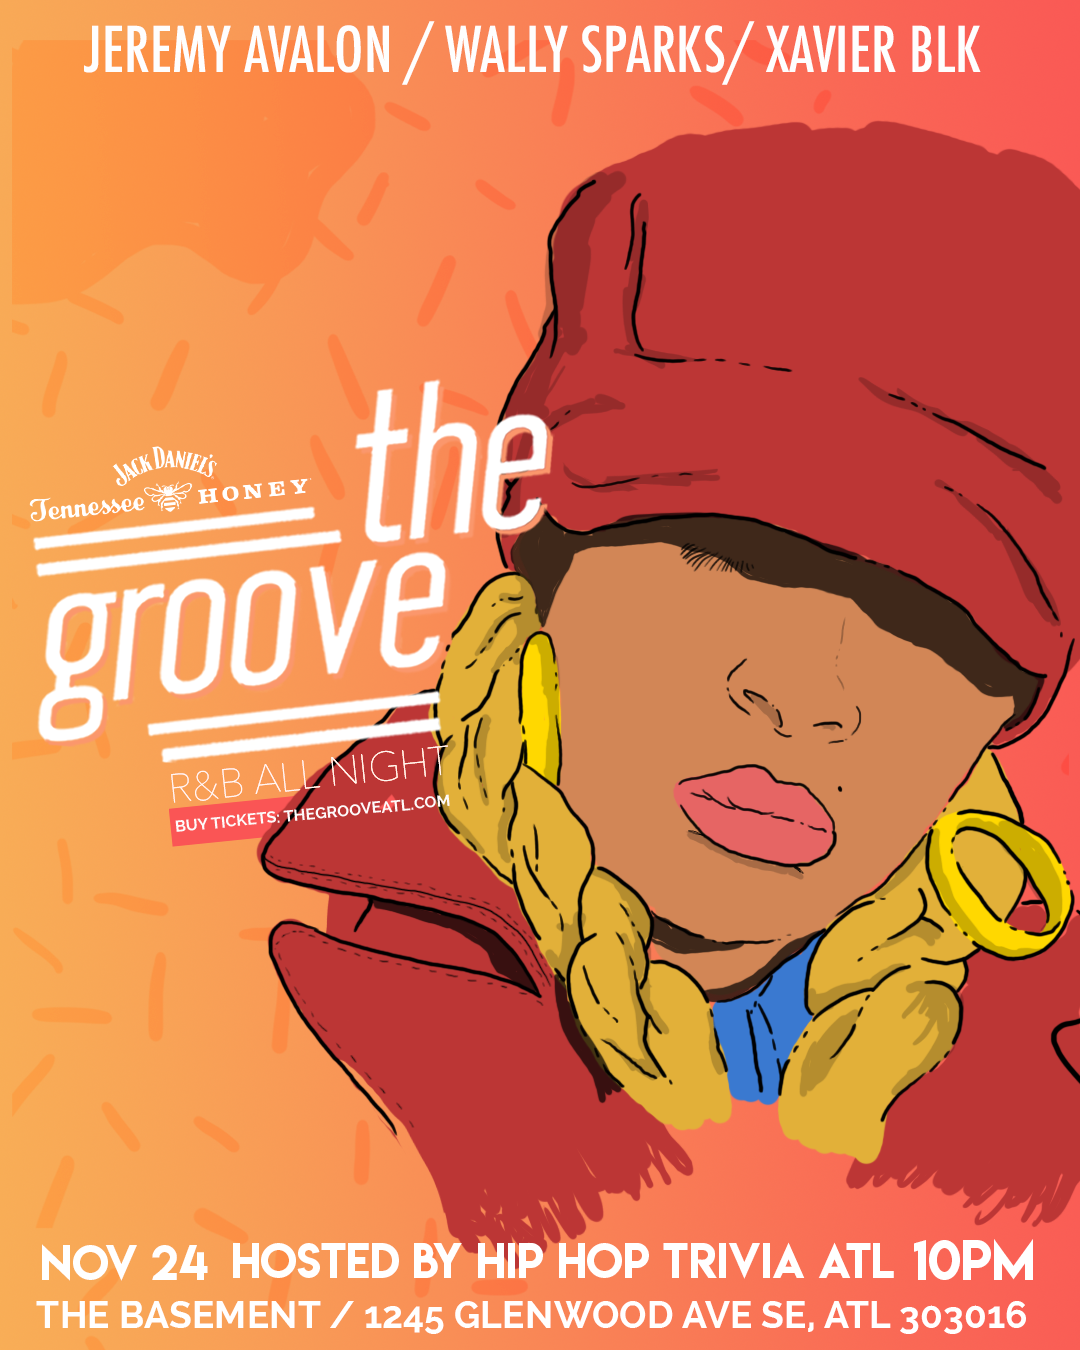 002-the-groove-ig-portrait-112417.png